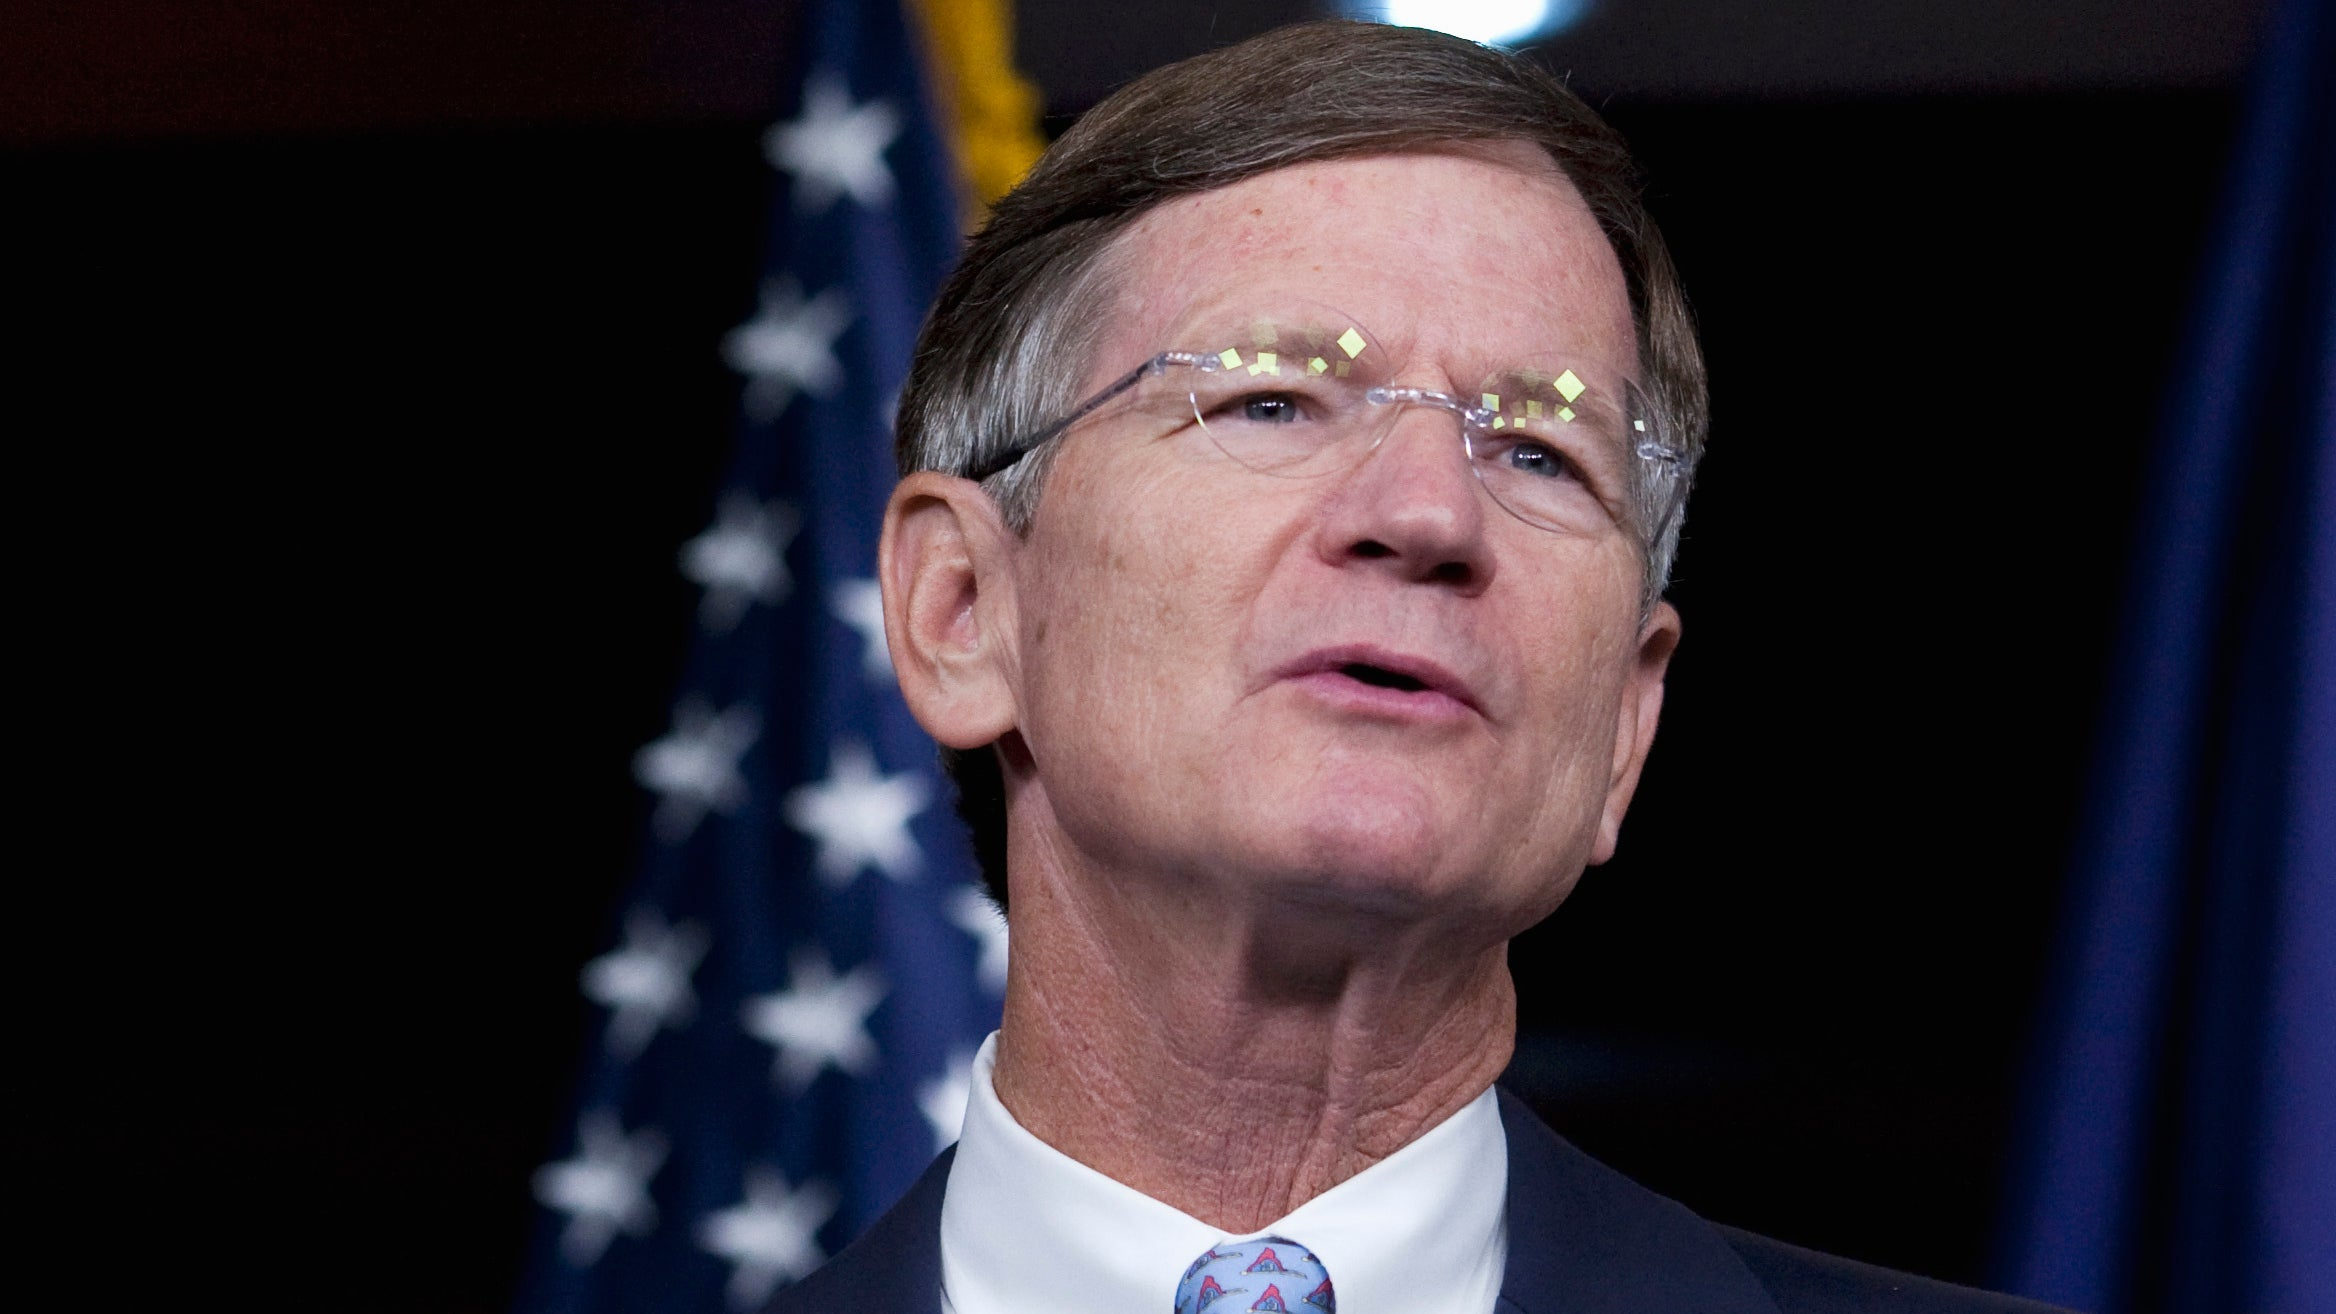 These Climate Scientists Think US House Science Chair Lamar Smith Has No Idea What He's Talking About